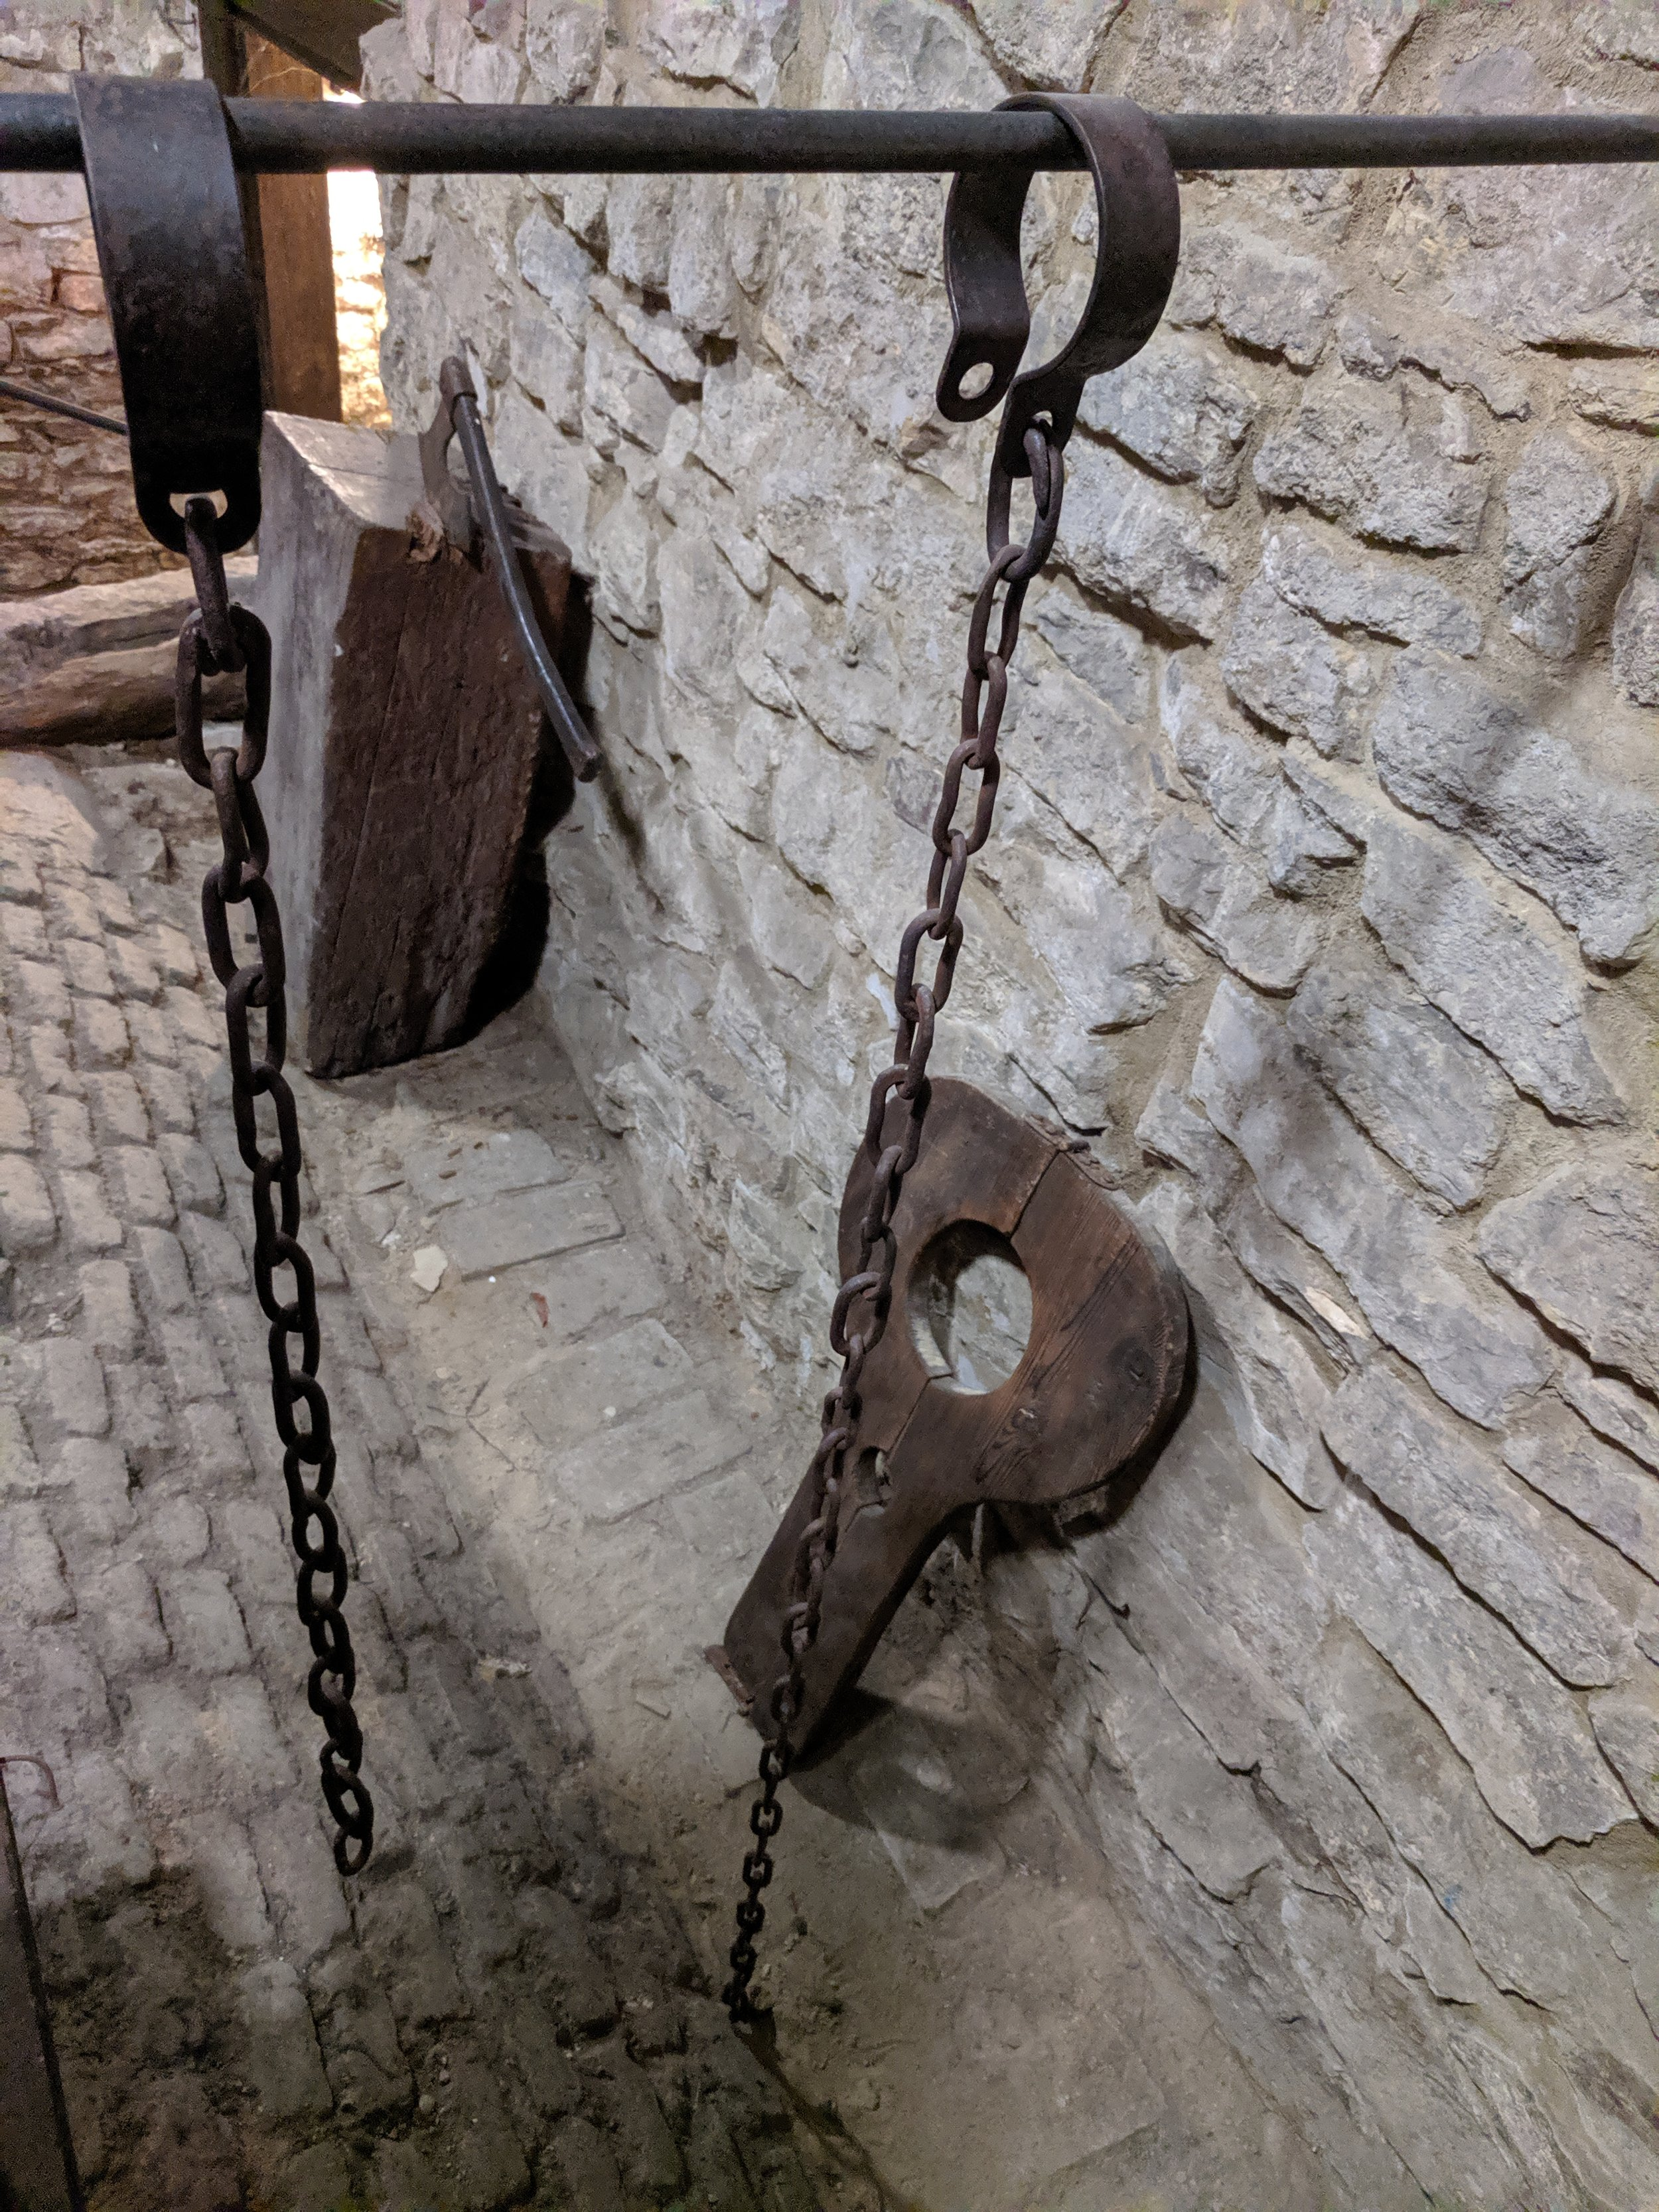 Prison under Prague Town Hall and original implements used for penal punishment in the era of Jan Hus.